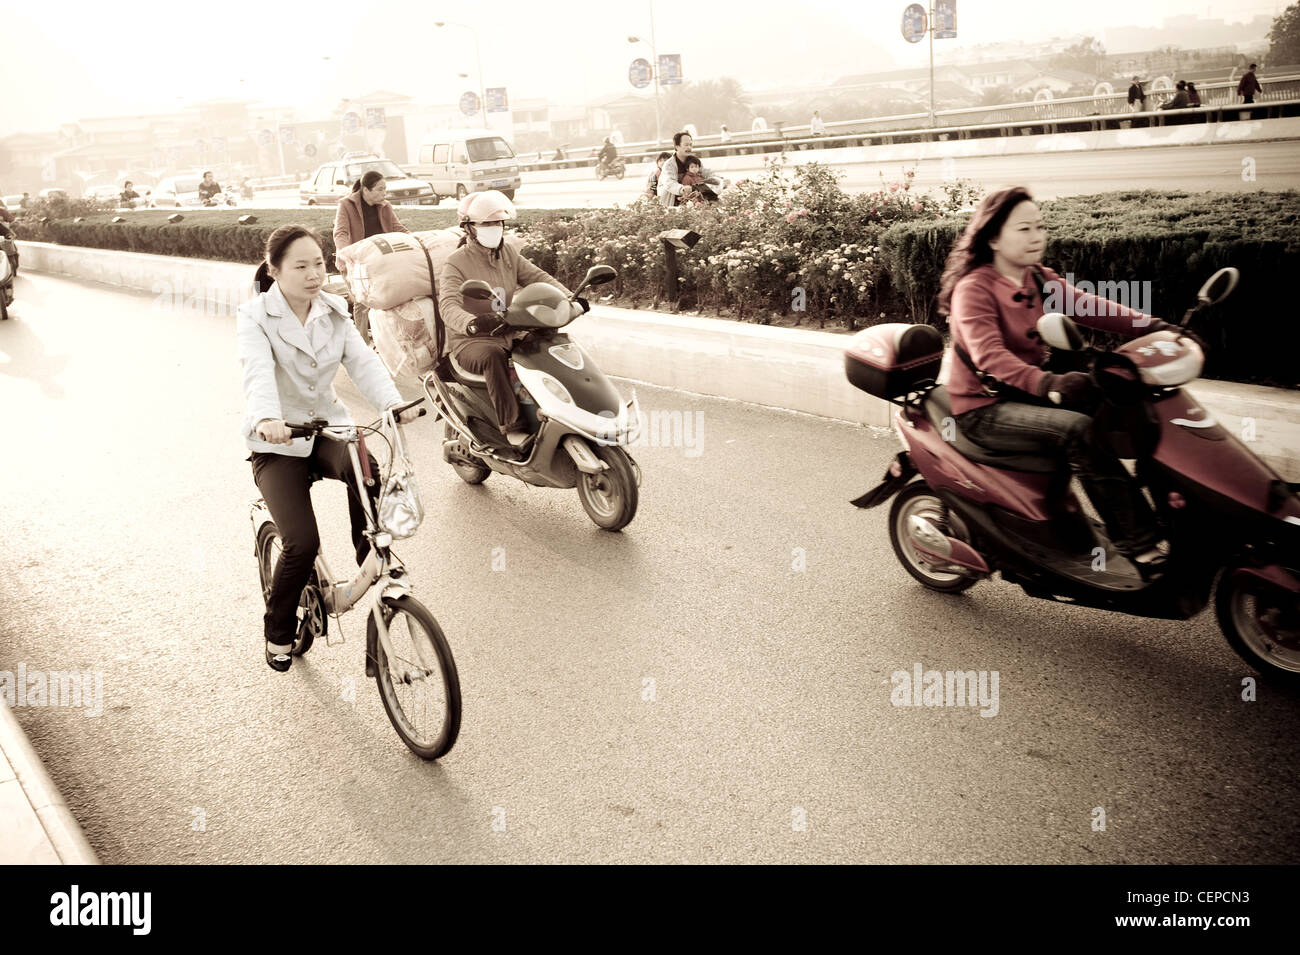 People Riding Bicycles And Motorcycles - Stock Image